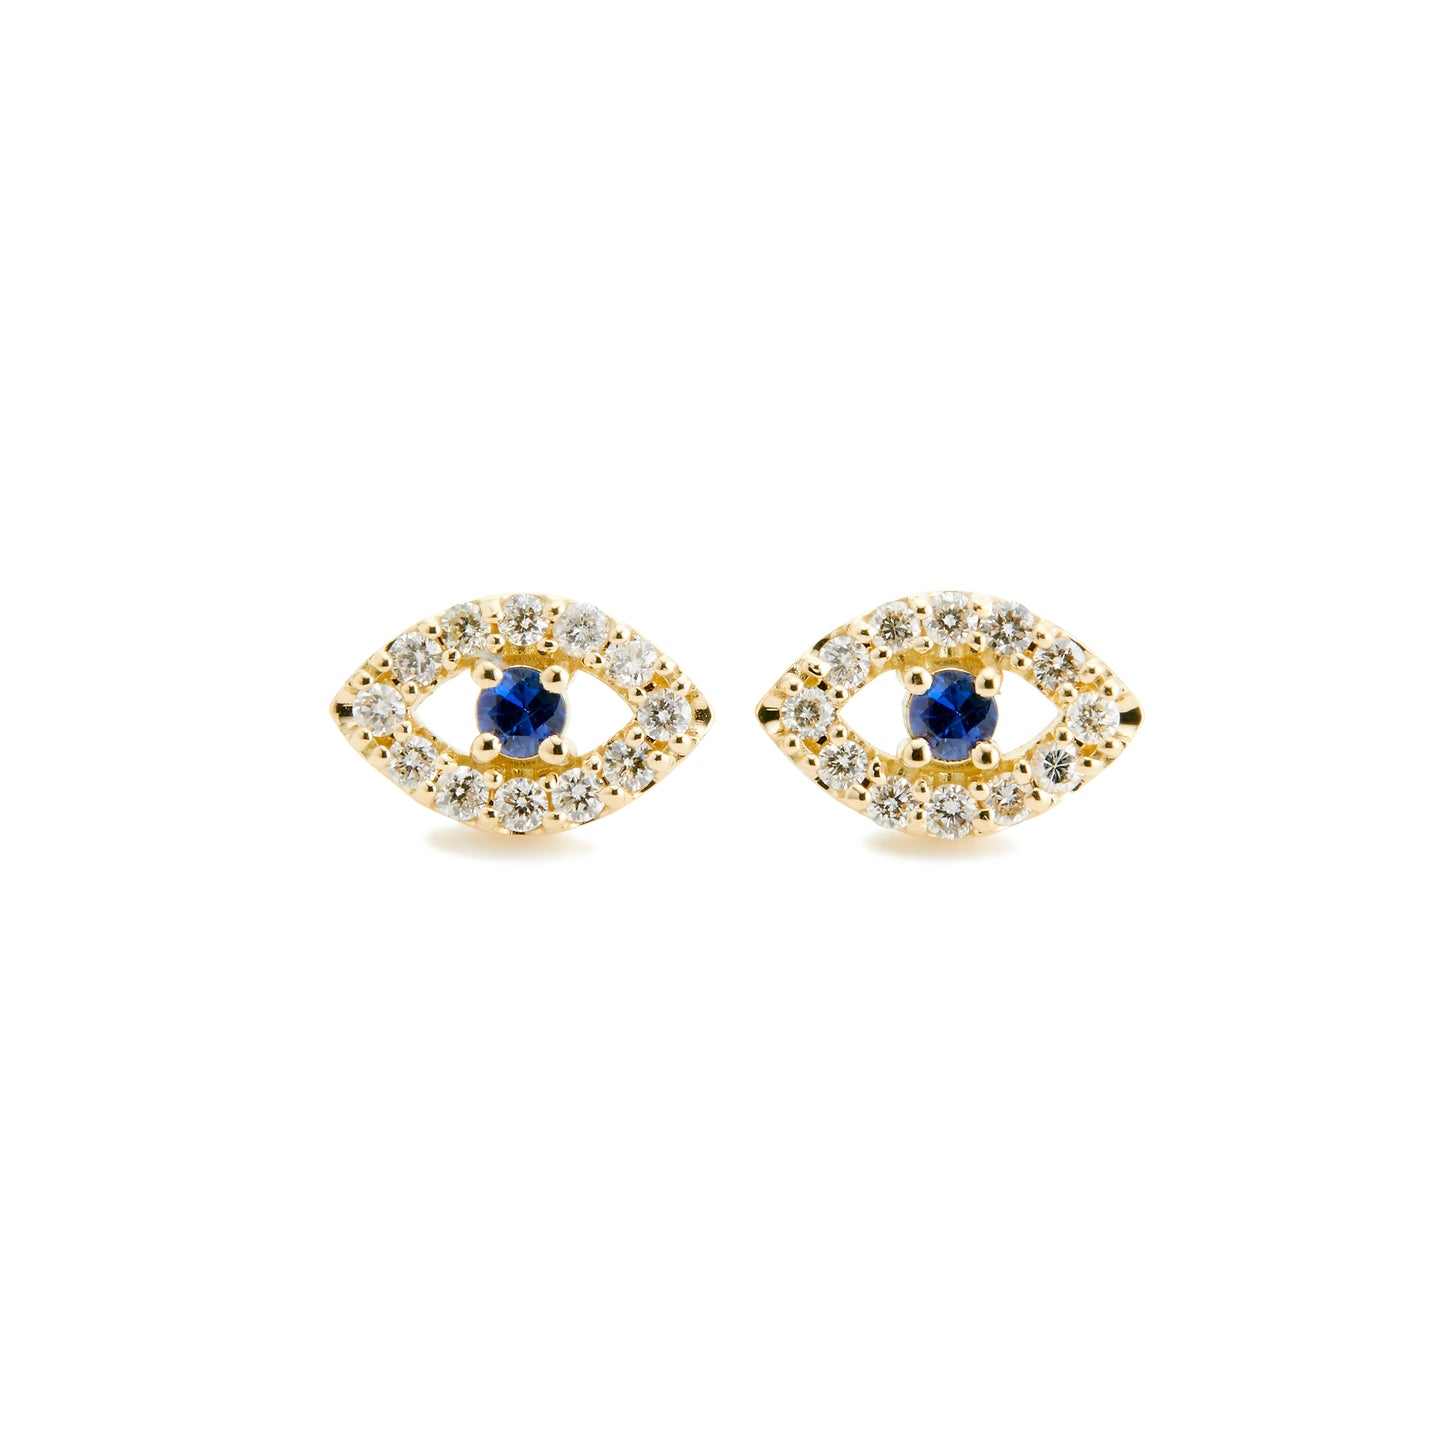 Surya Eye Petit Earrings  | Blue Sapphire